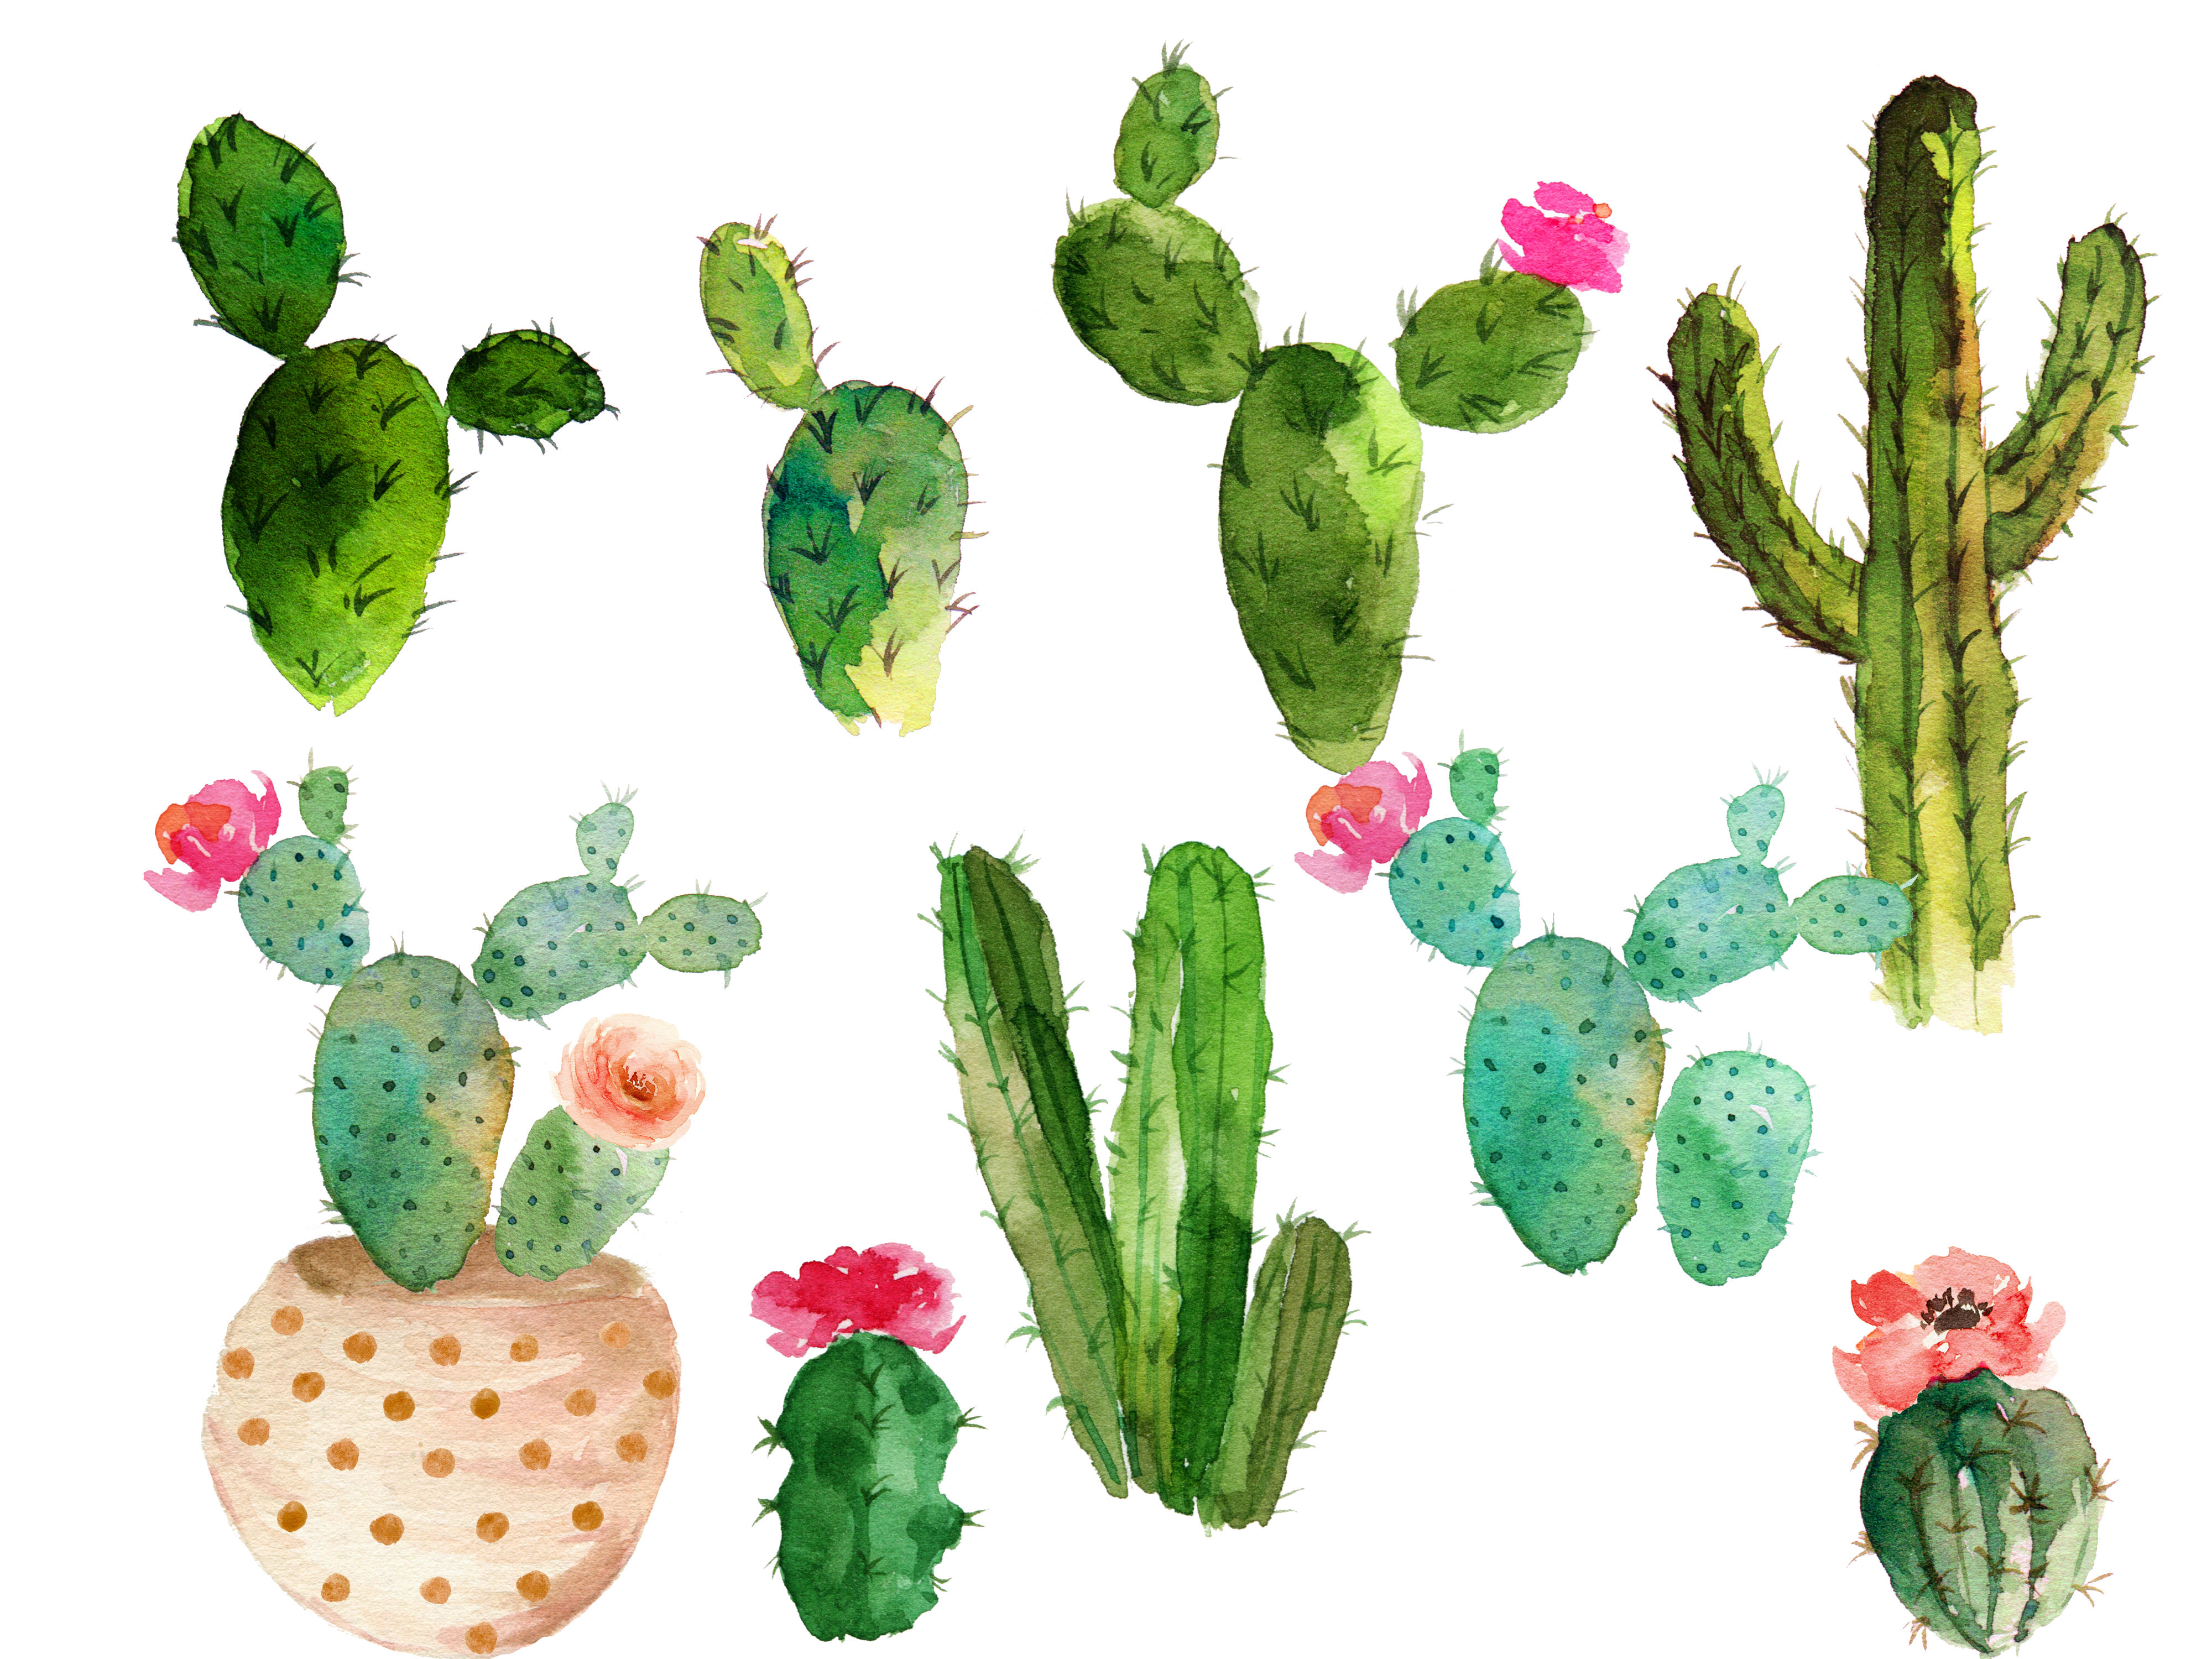 Drawing cactus prickly pear. Download on ubisafe illustration